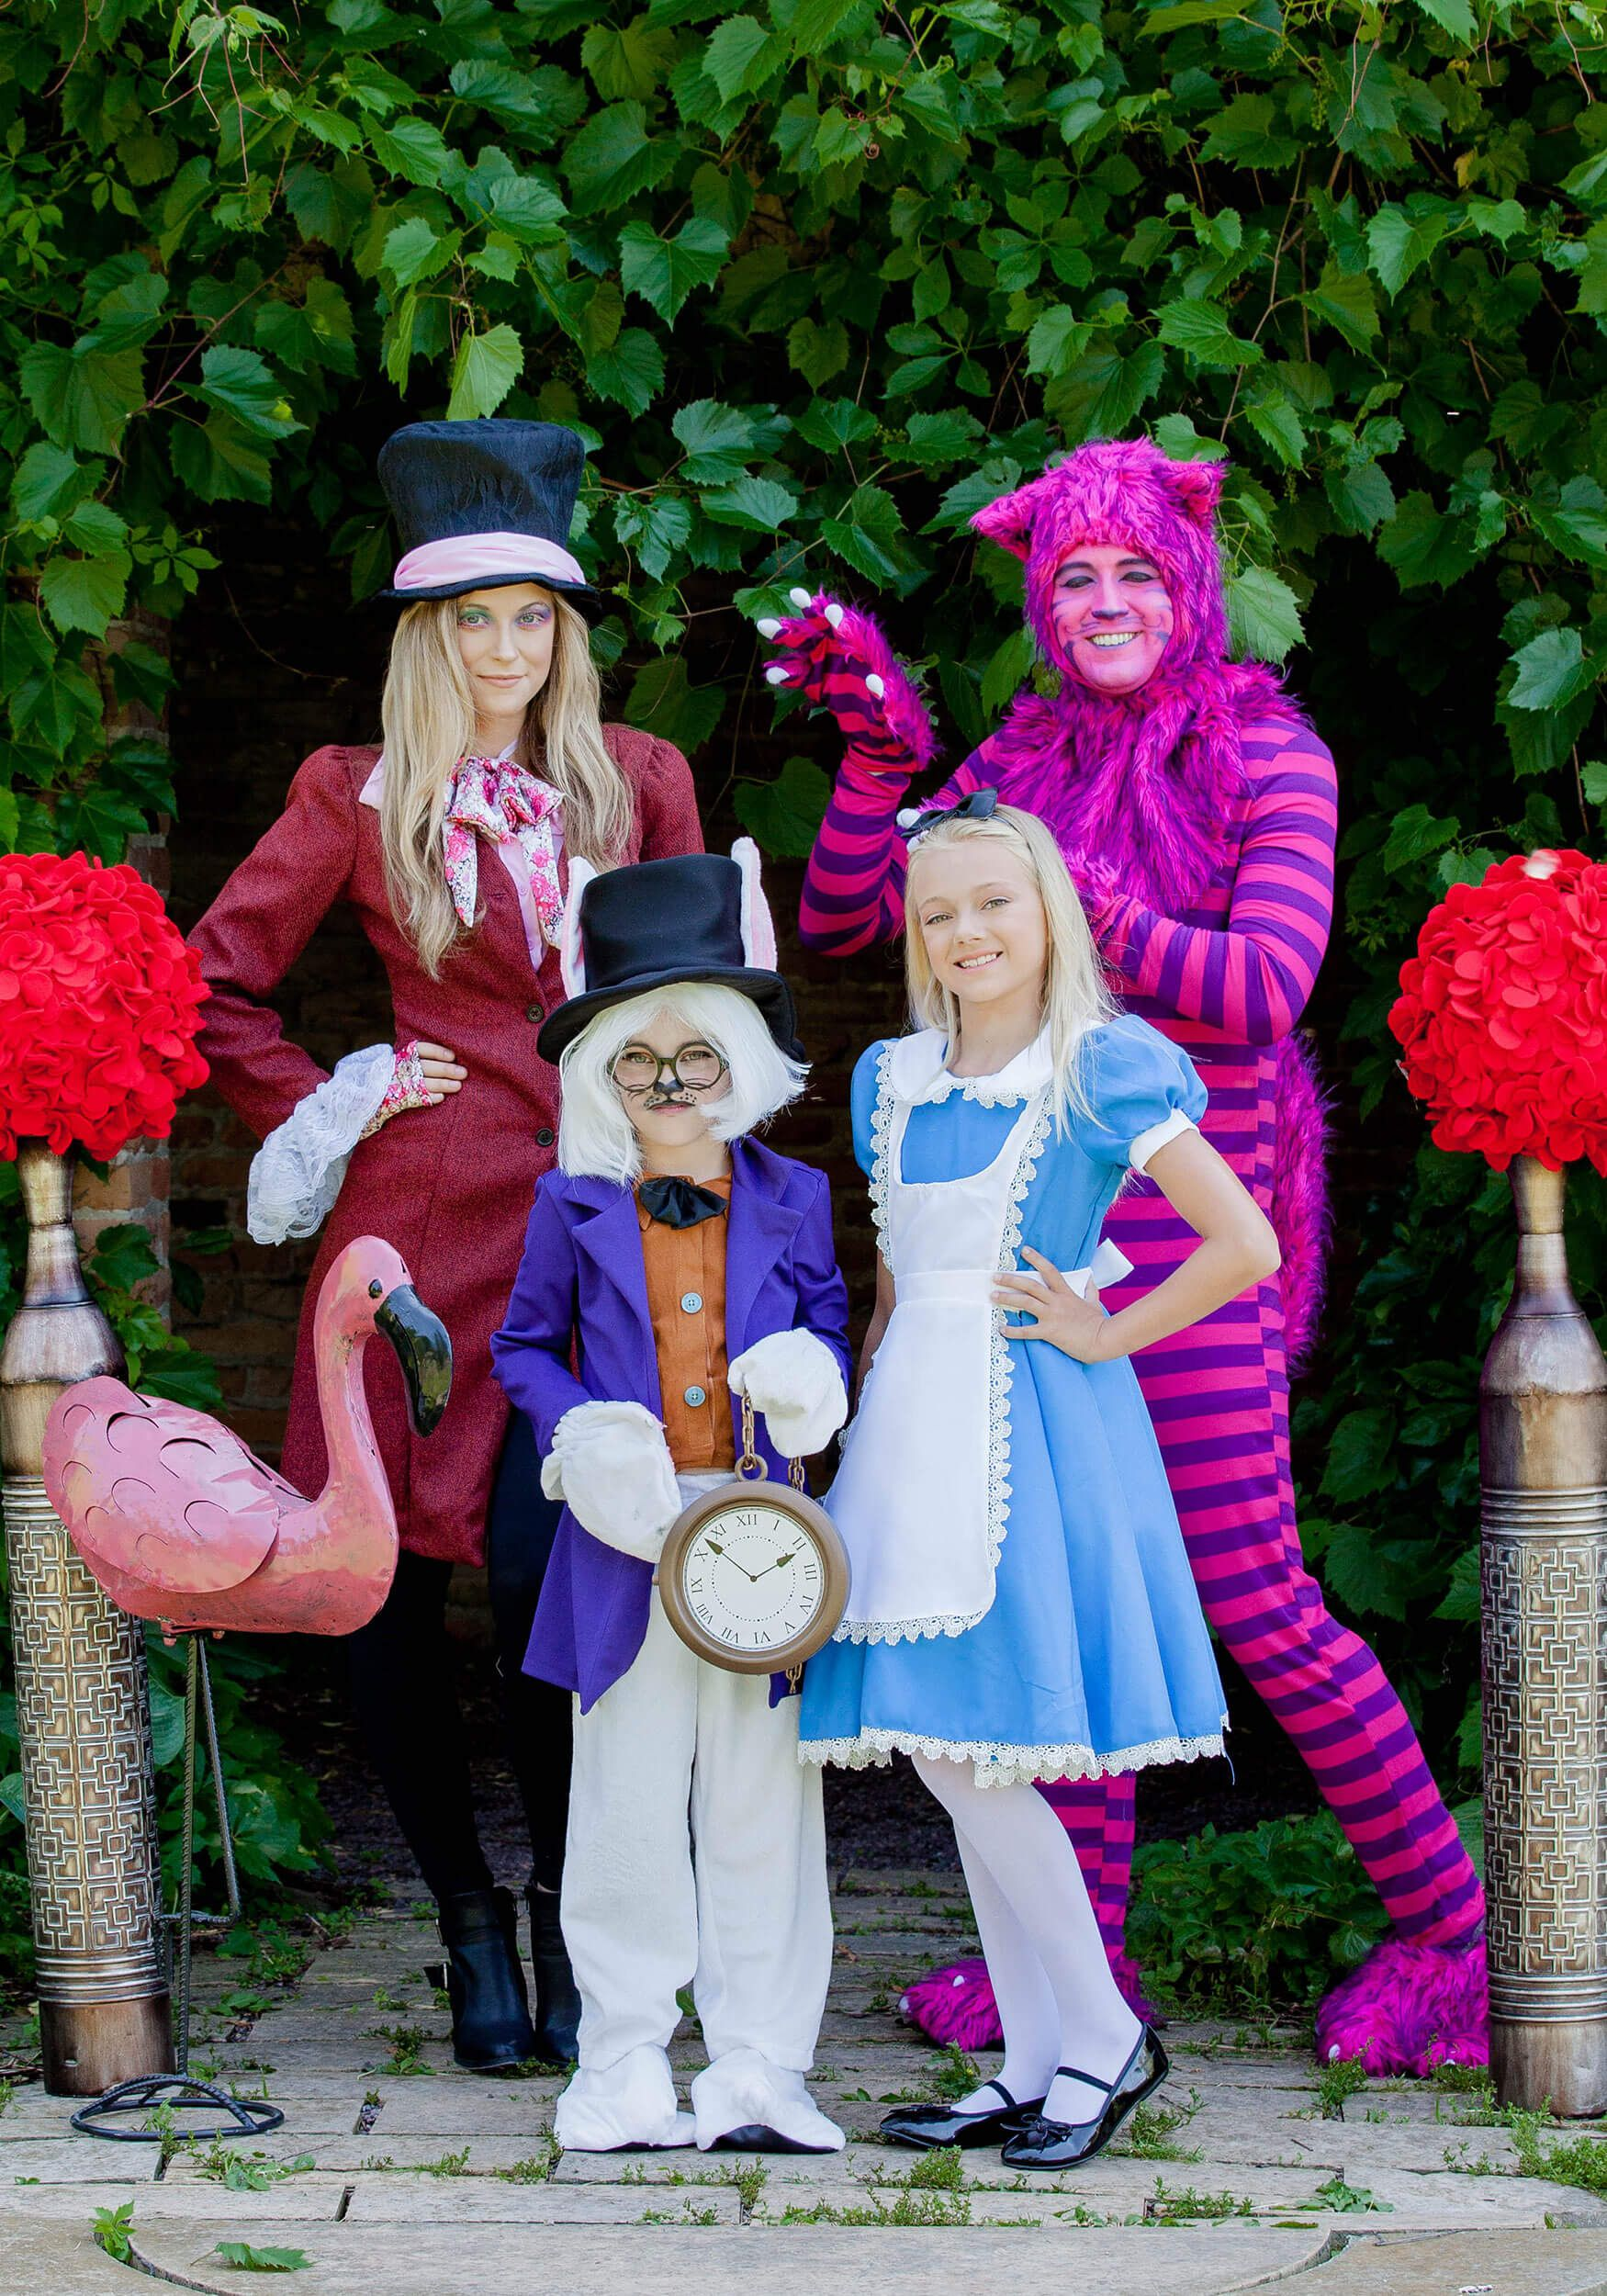 Best family halloween costume ideas for in mondo palace